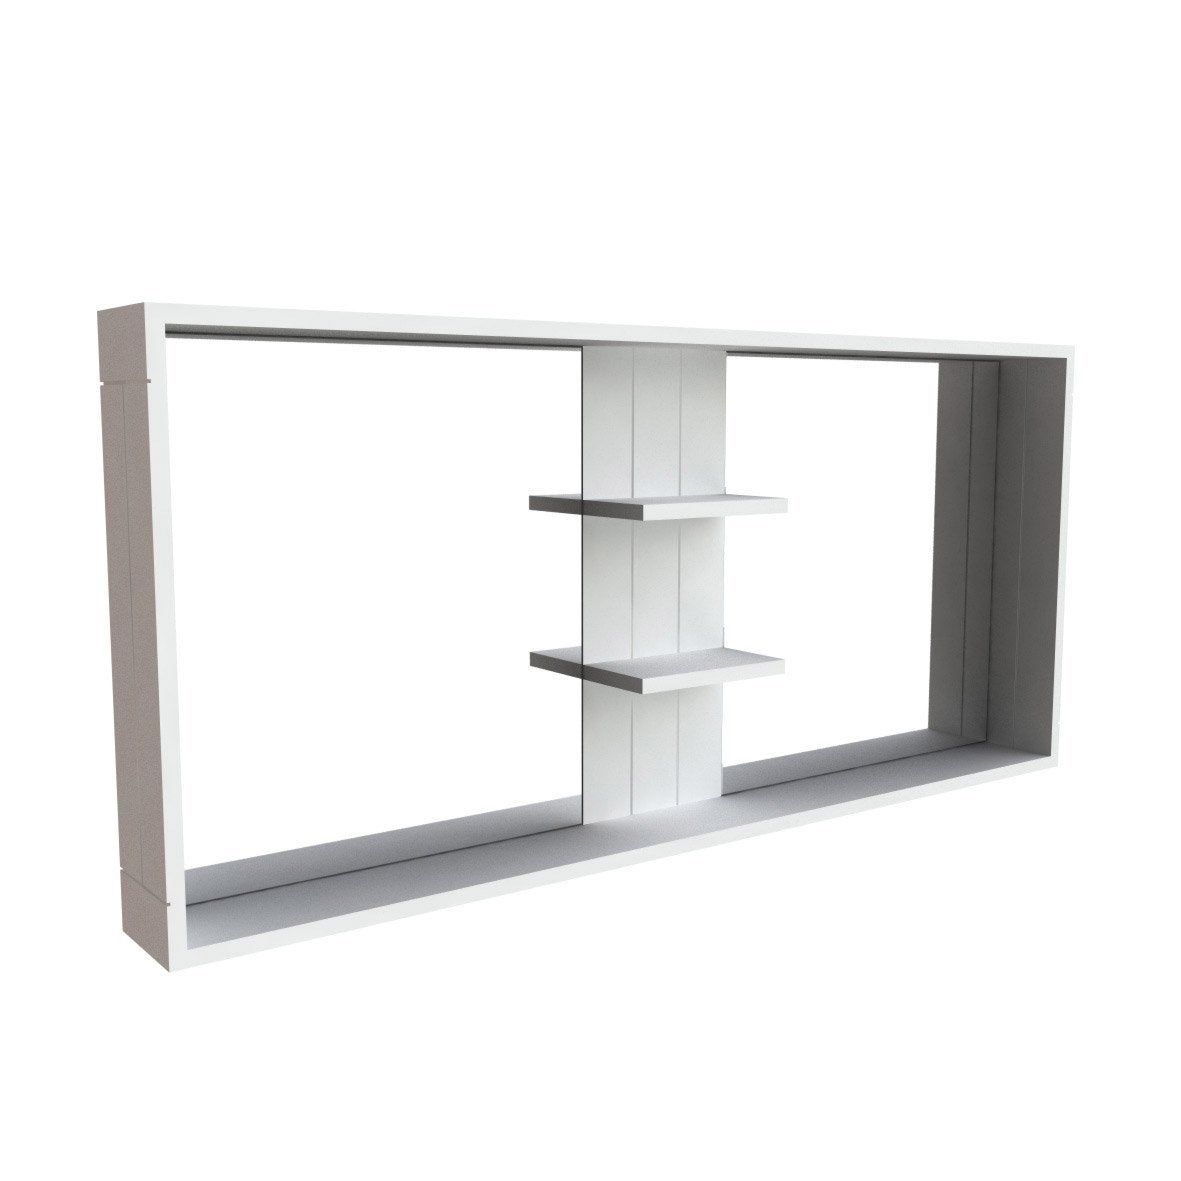 Accroche miroir leroy merlin maison design for Miroir long noir